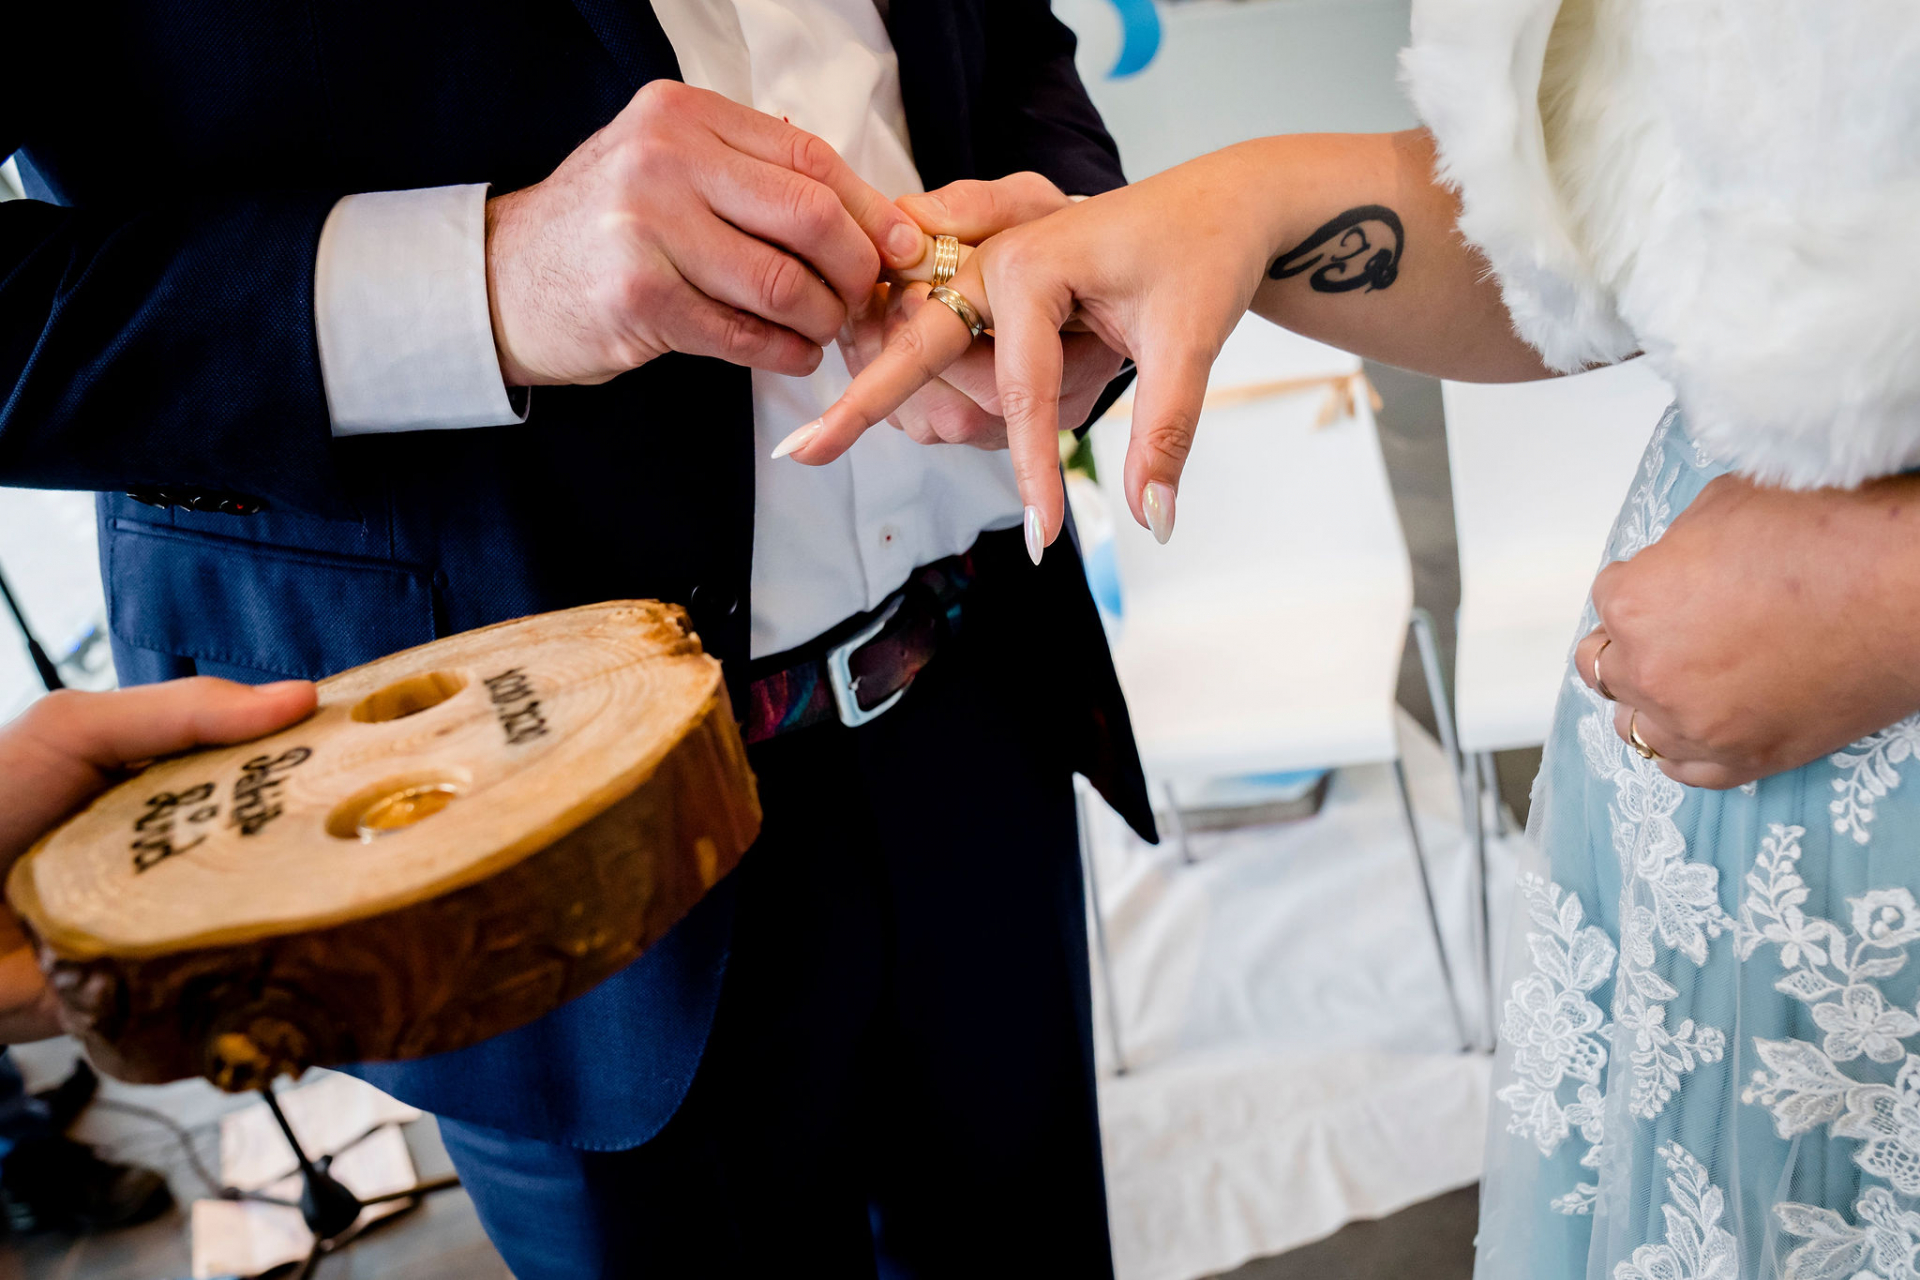 Rotterdam Wedding Photography | The ring ceremony, to symbolize eternal love